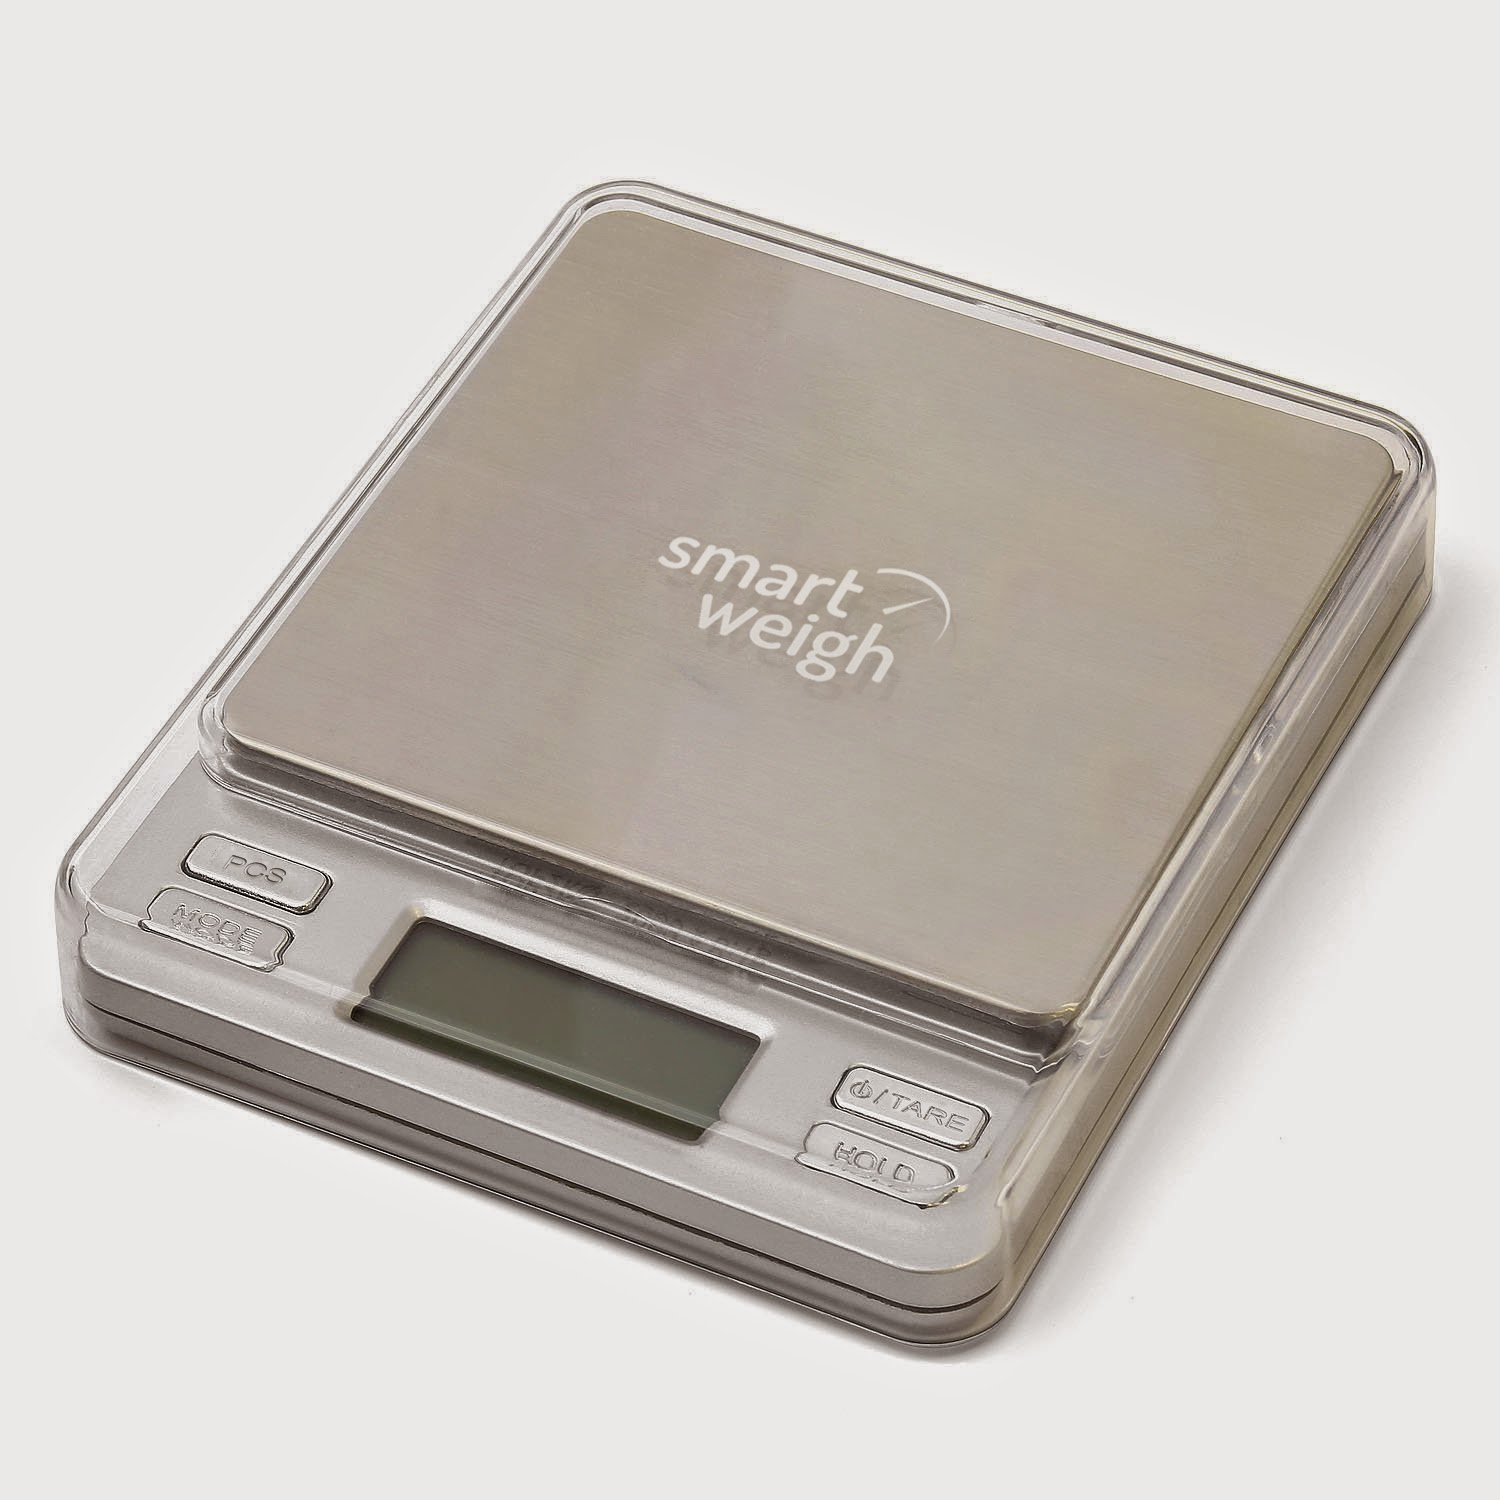 The Smart Weigh 500 x 0.01g Digital Pro Pocket Scale